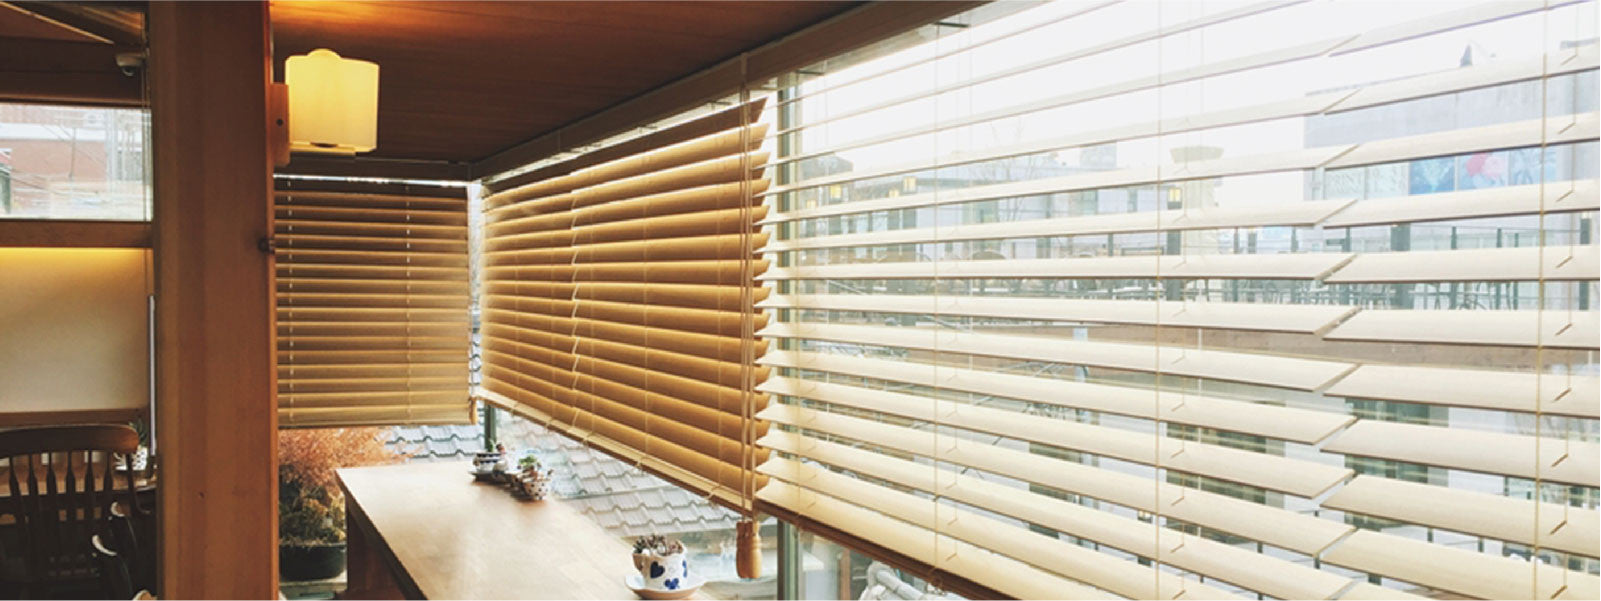 price for push and uk buy electric rollerblind blinds banner one of with wireless comfort remote button a privacy controlled motor great roller